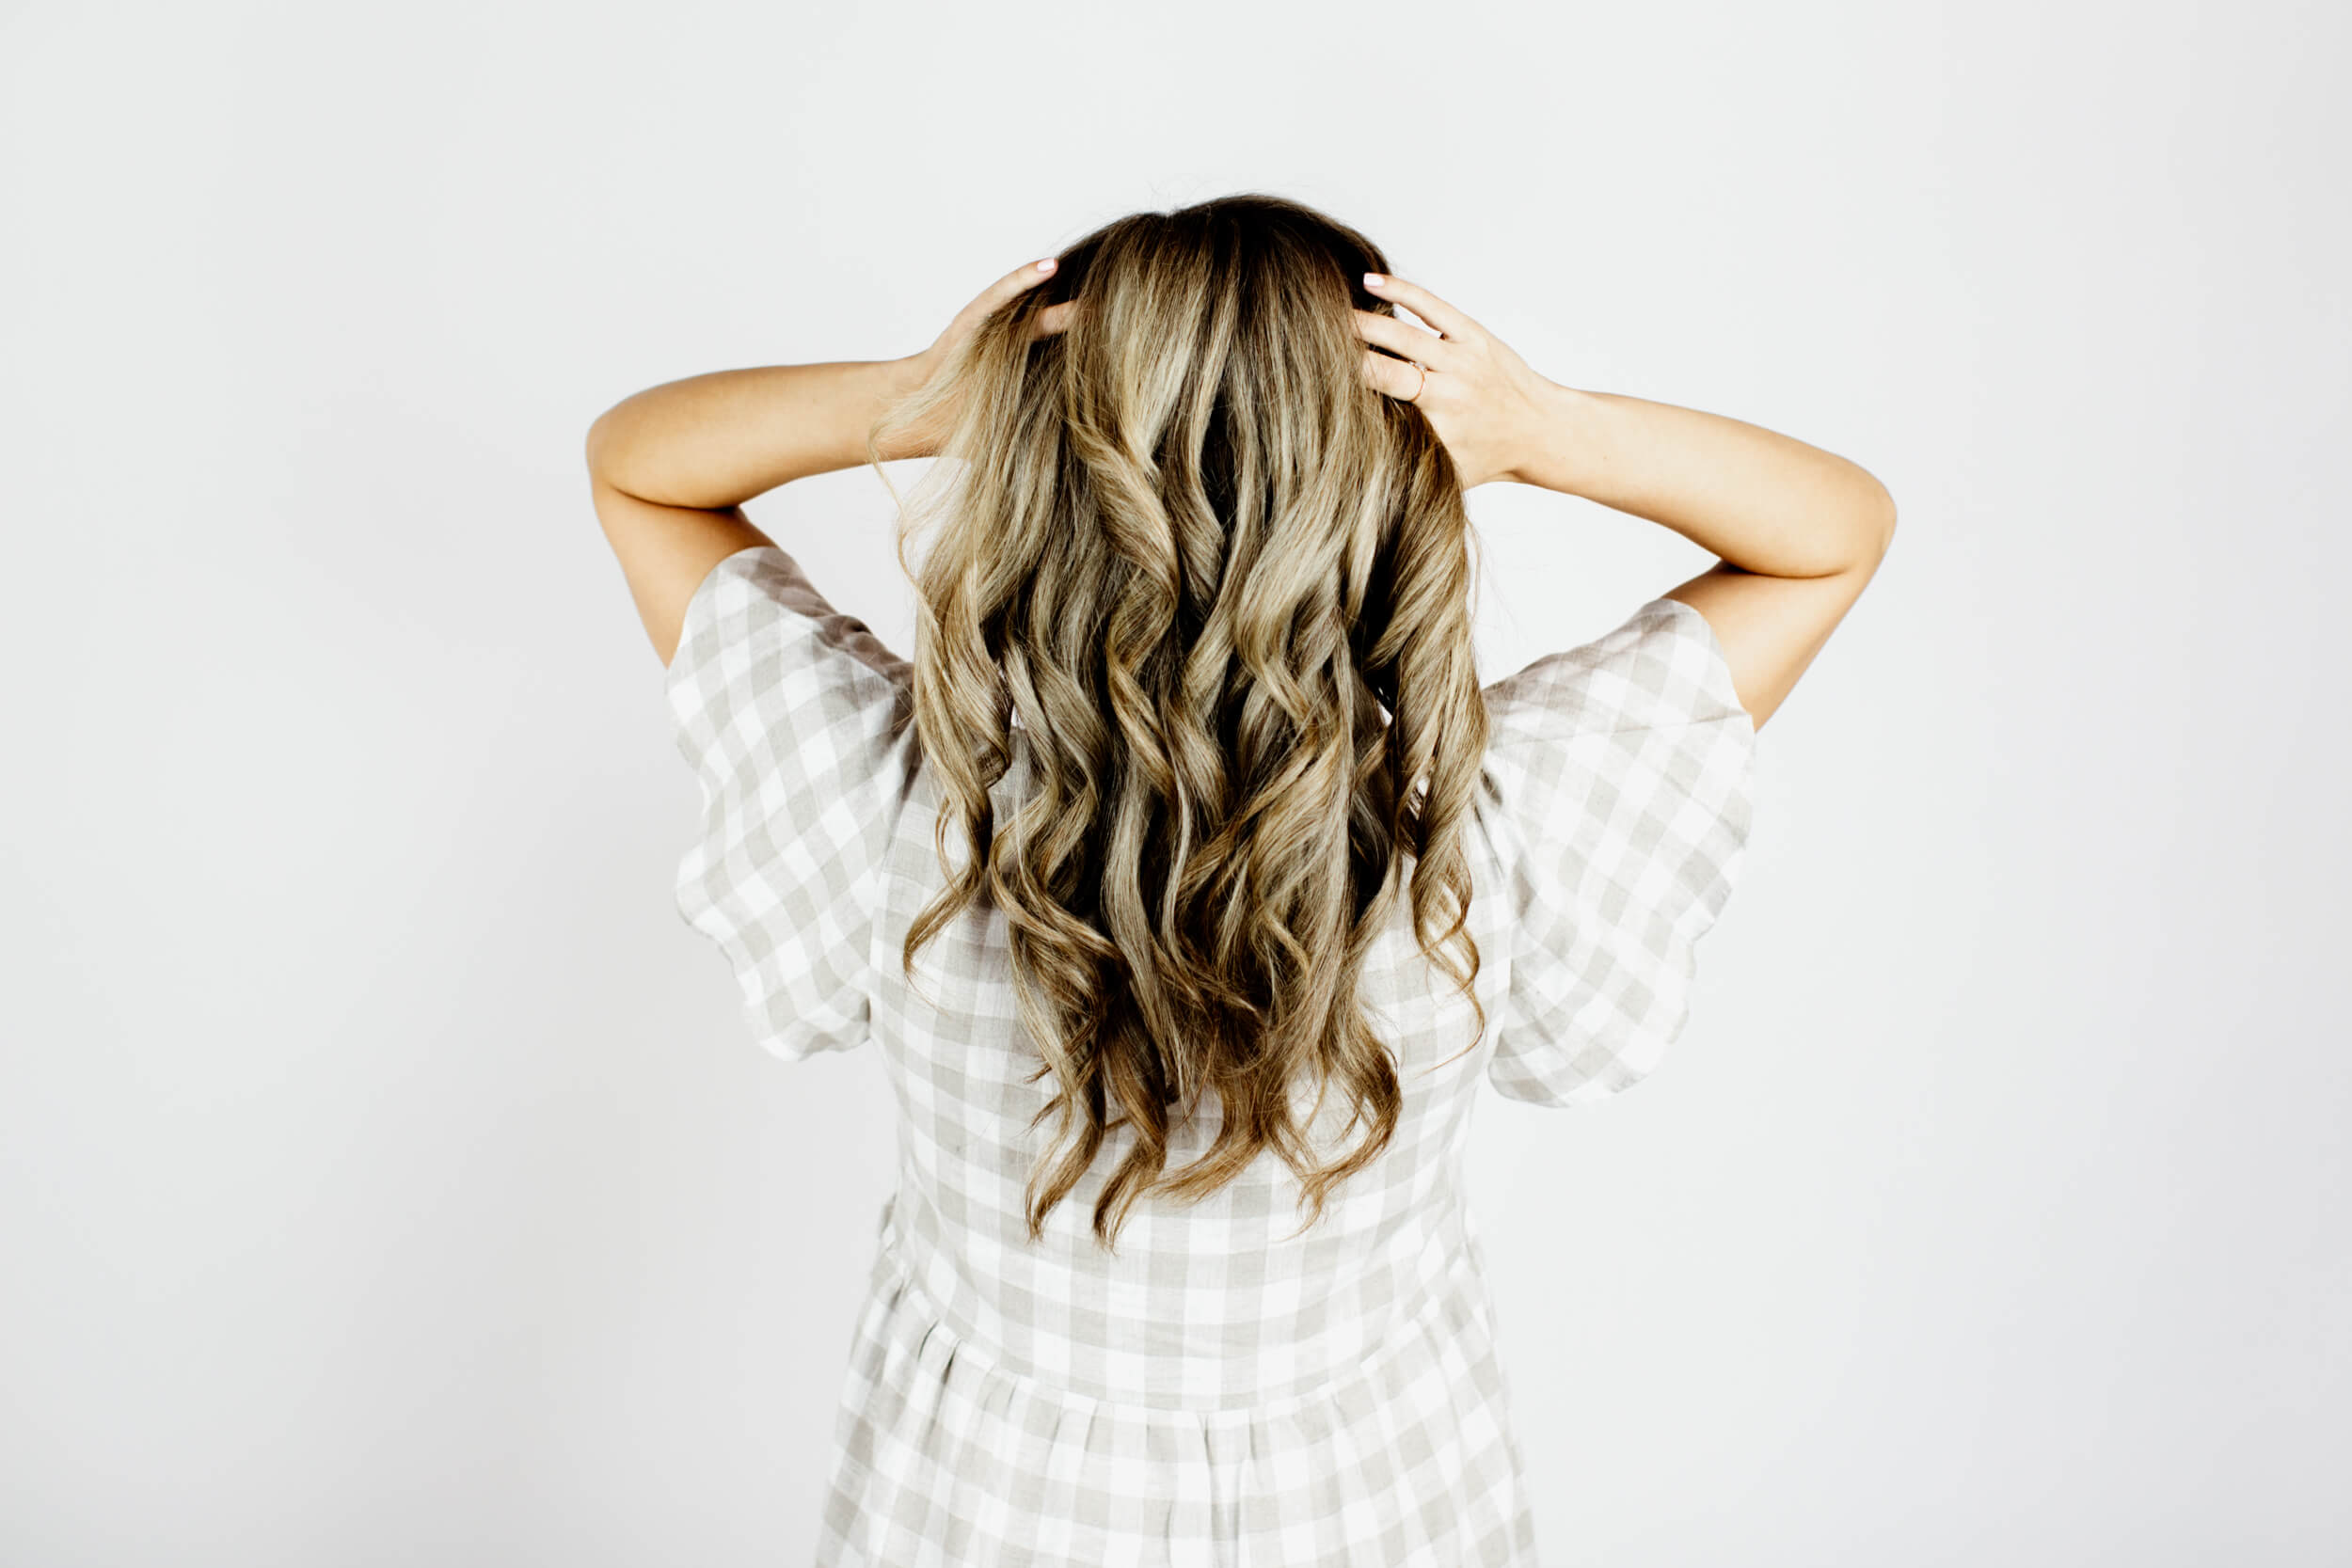 A head of curly blonde hair seen from the back.